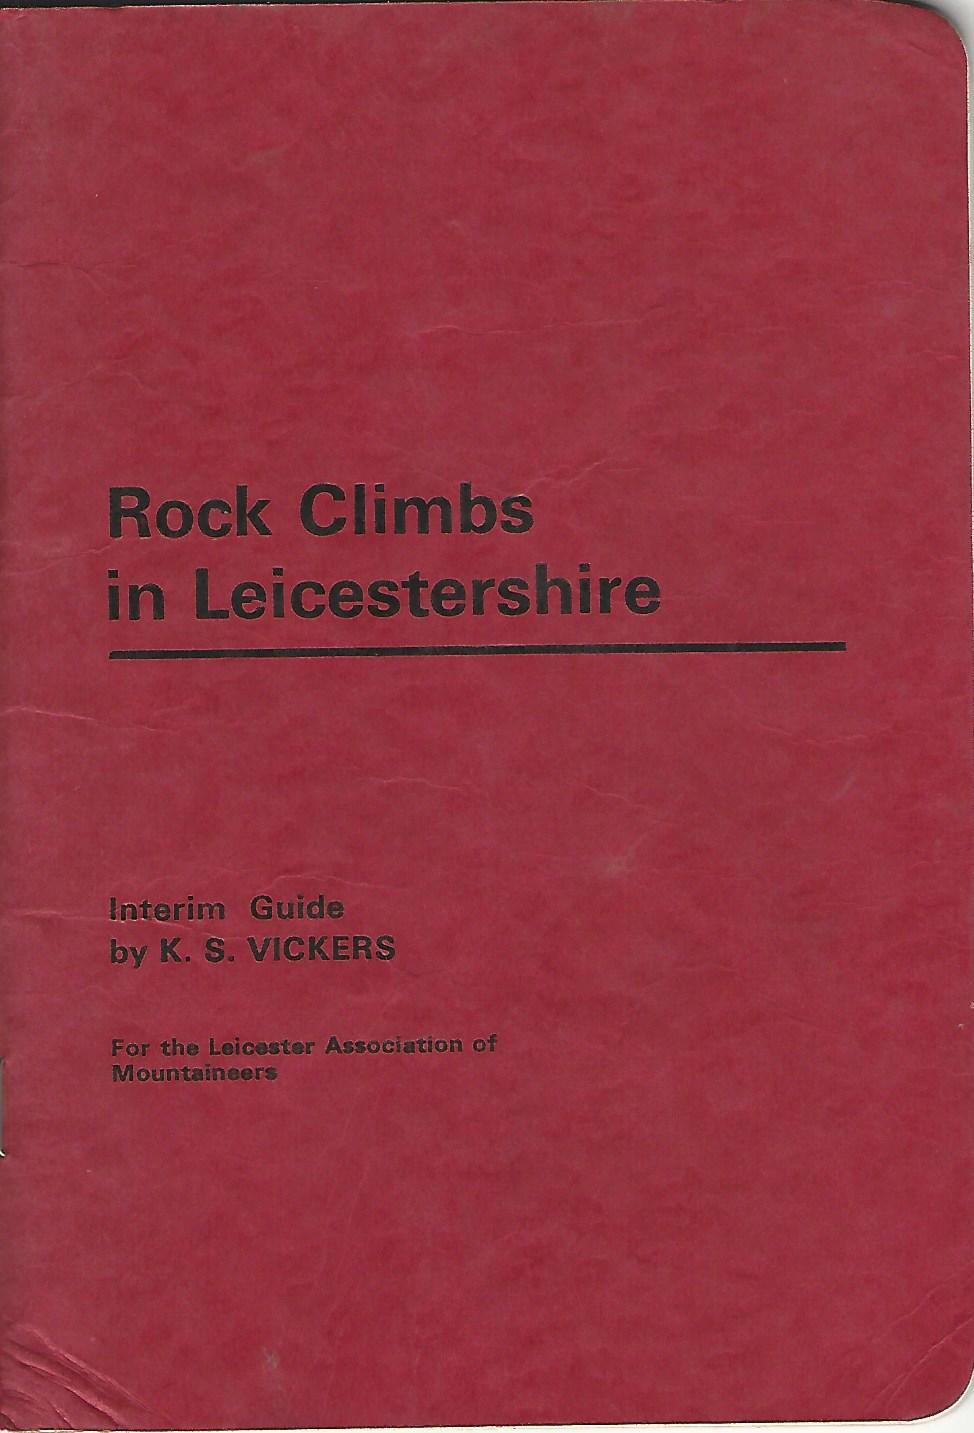 Image for Rock Climbs in Leicestershire.